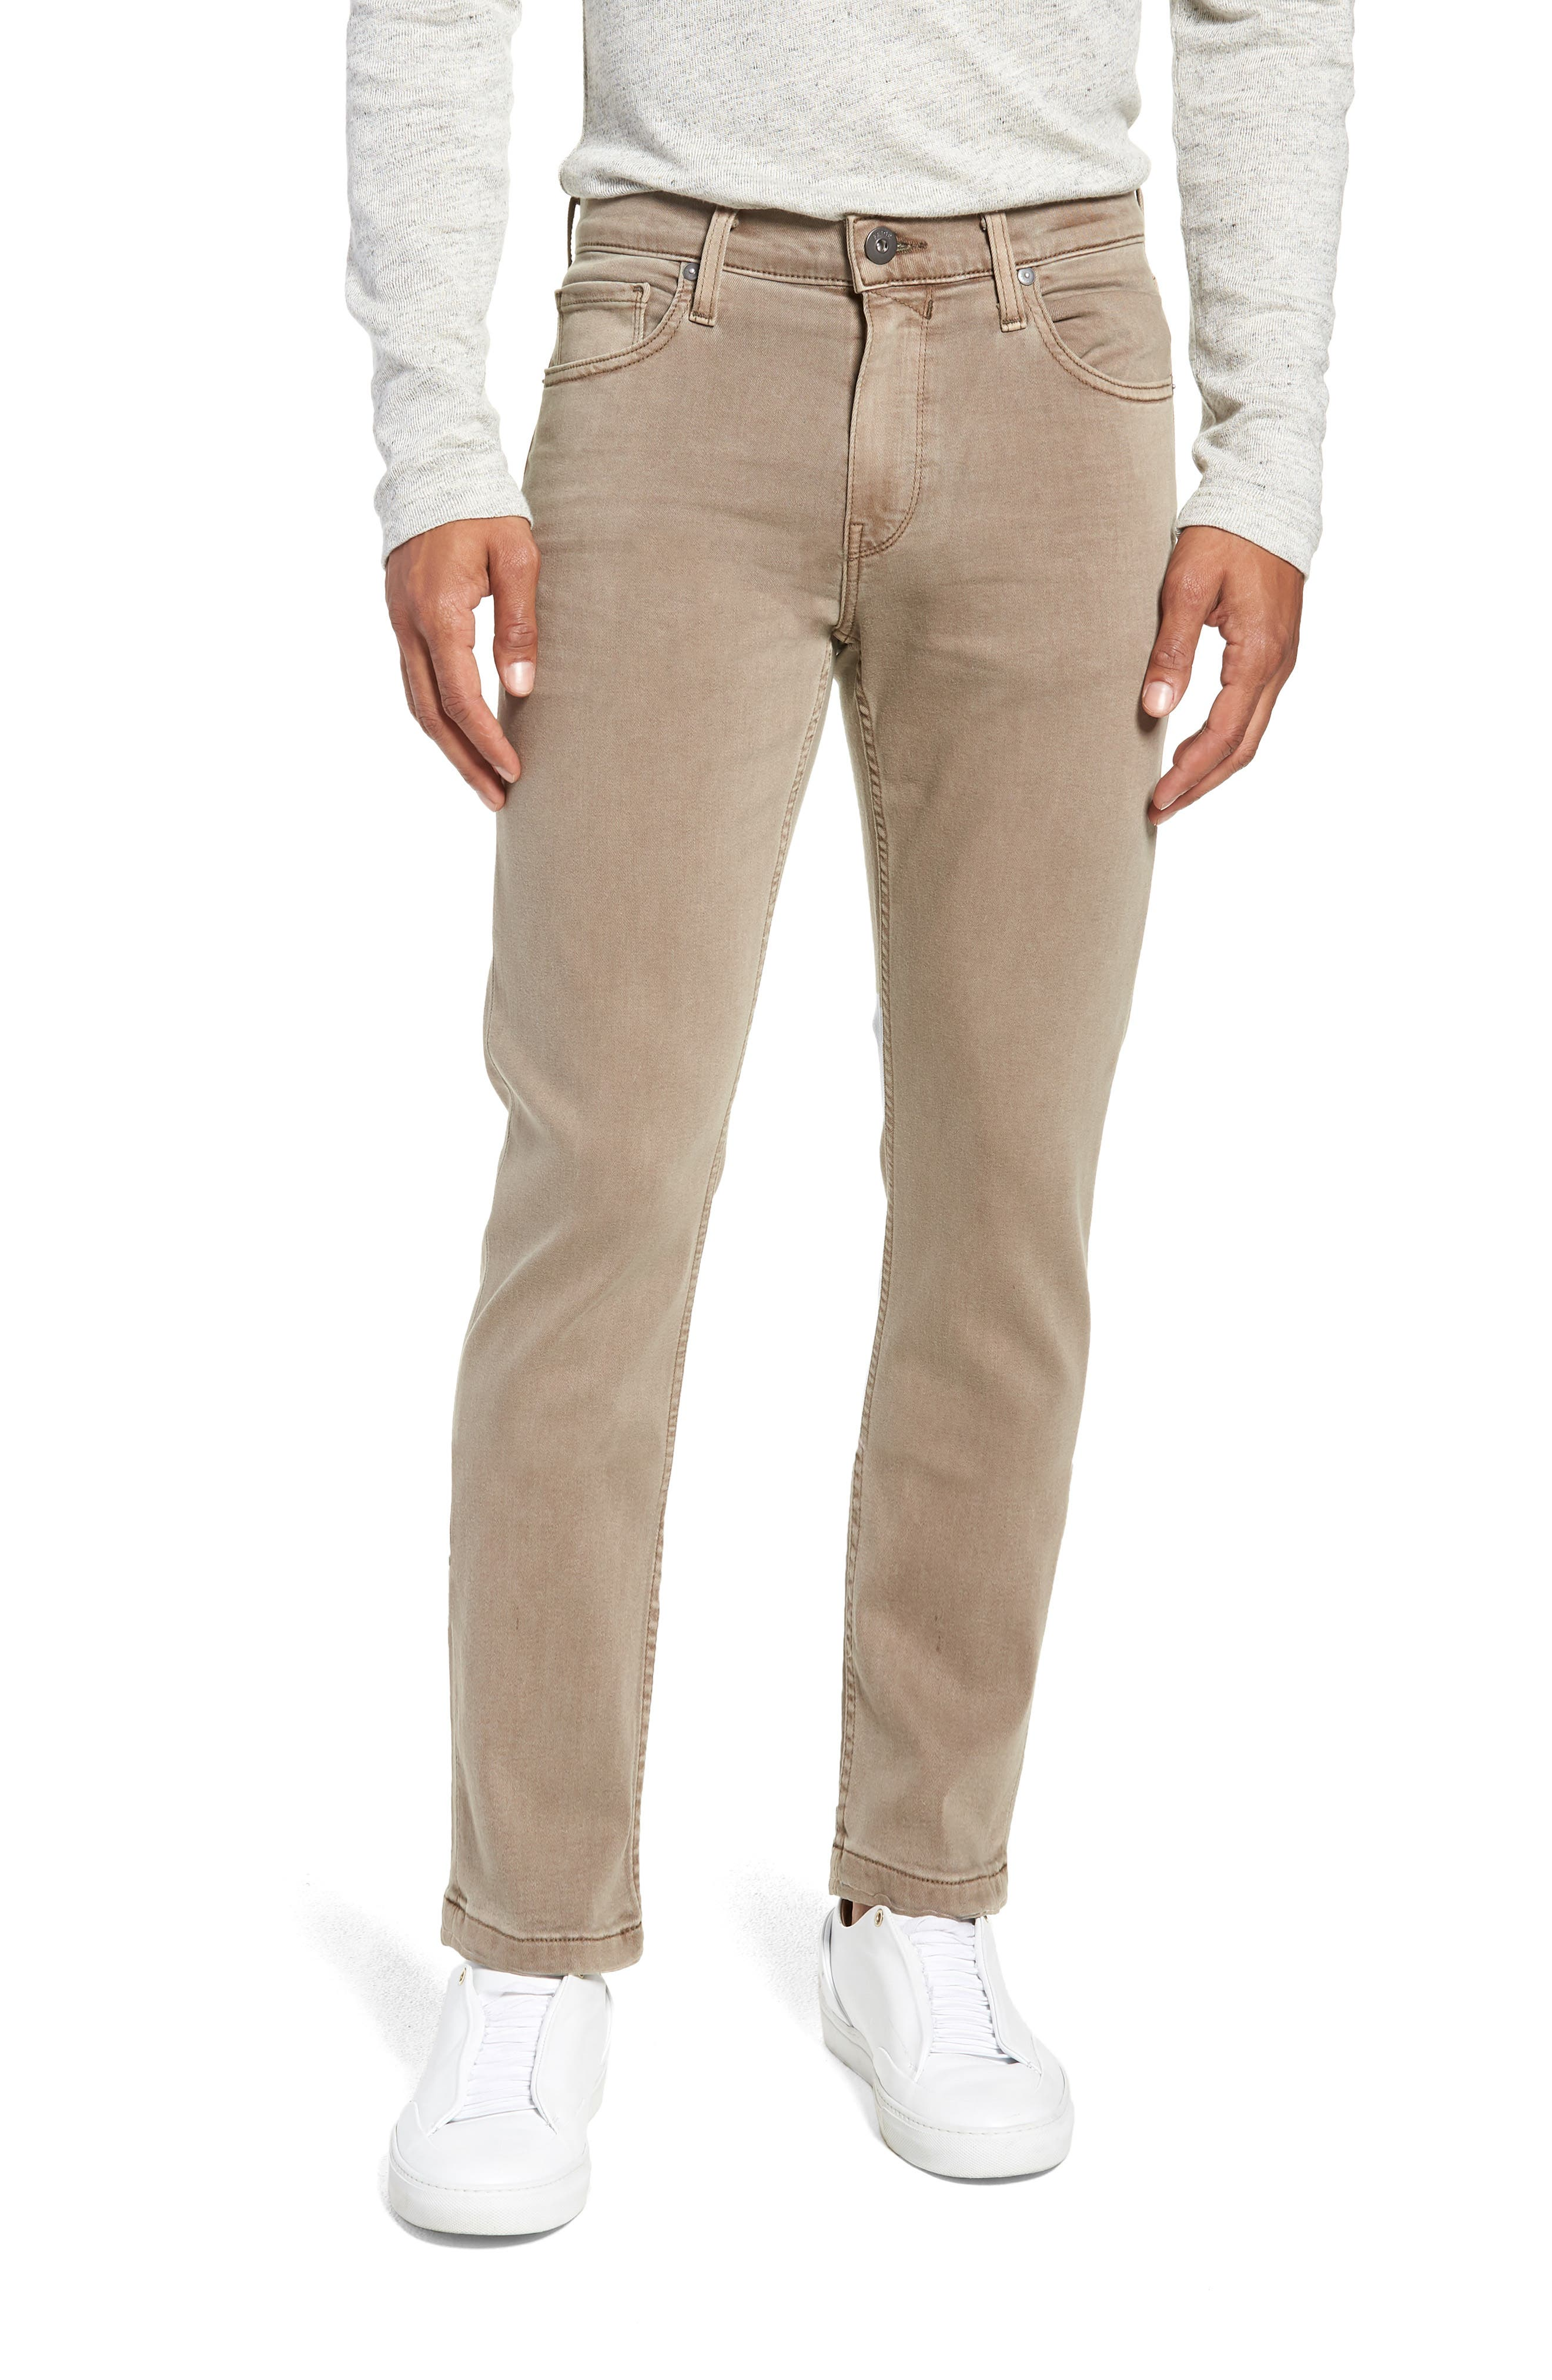 Transcend - Lennox Slim Fit Twill Pants,                             Main thumbnail 1, color,                             VINTAGE MUSHROOM